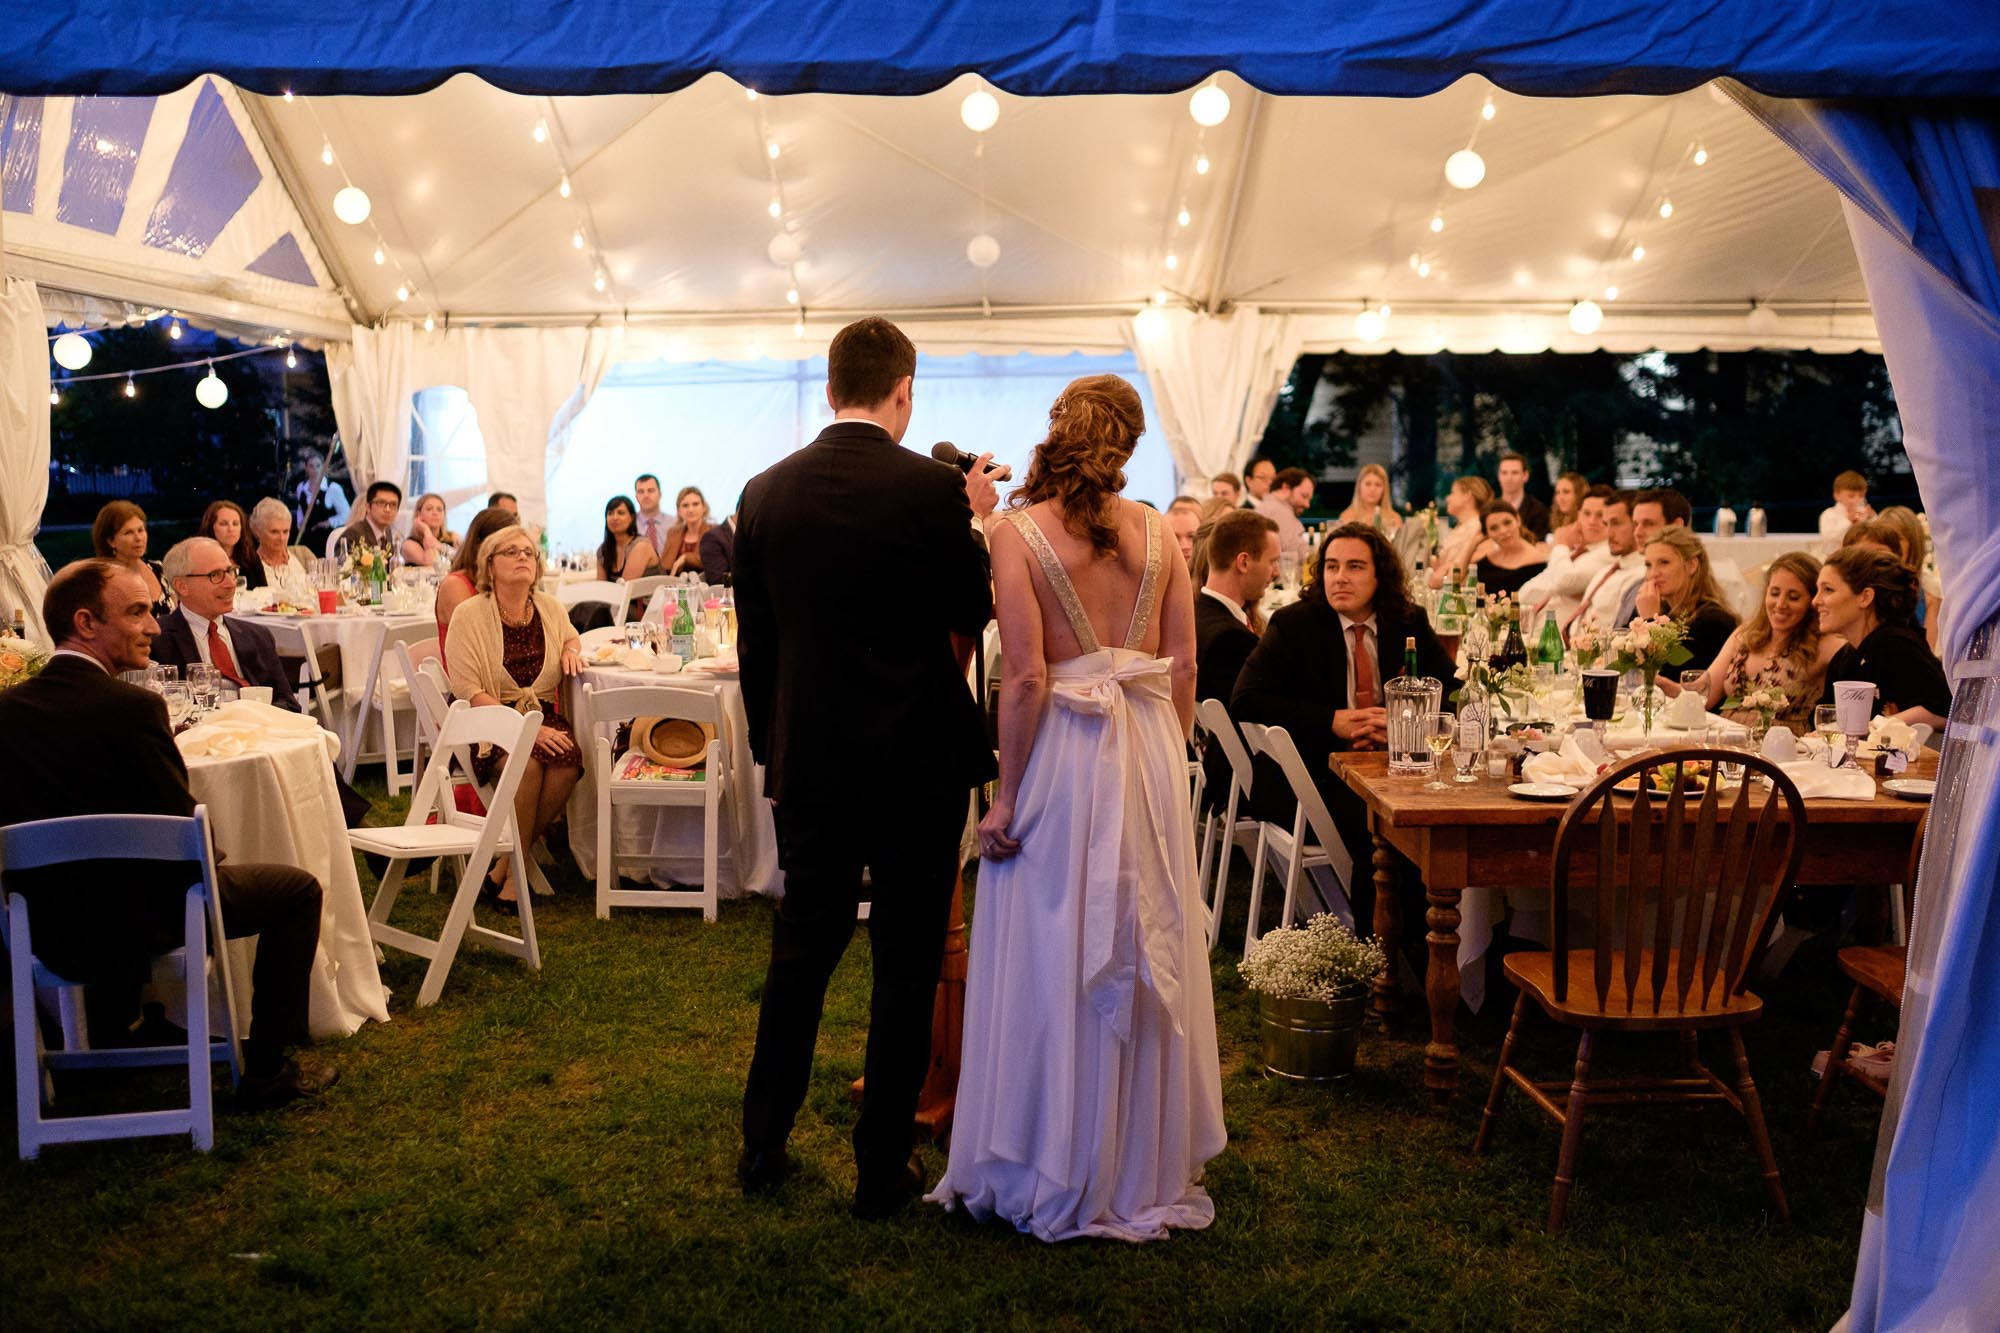 bride and groom give a wedding speech to their guests during their outdoor wedding reception at Markham Museum.